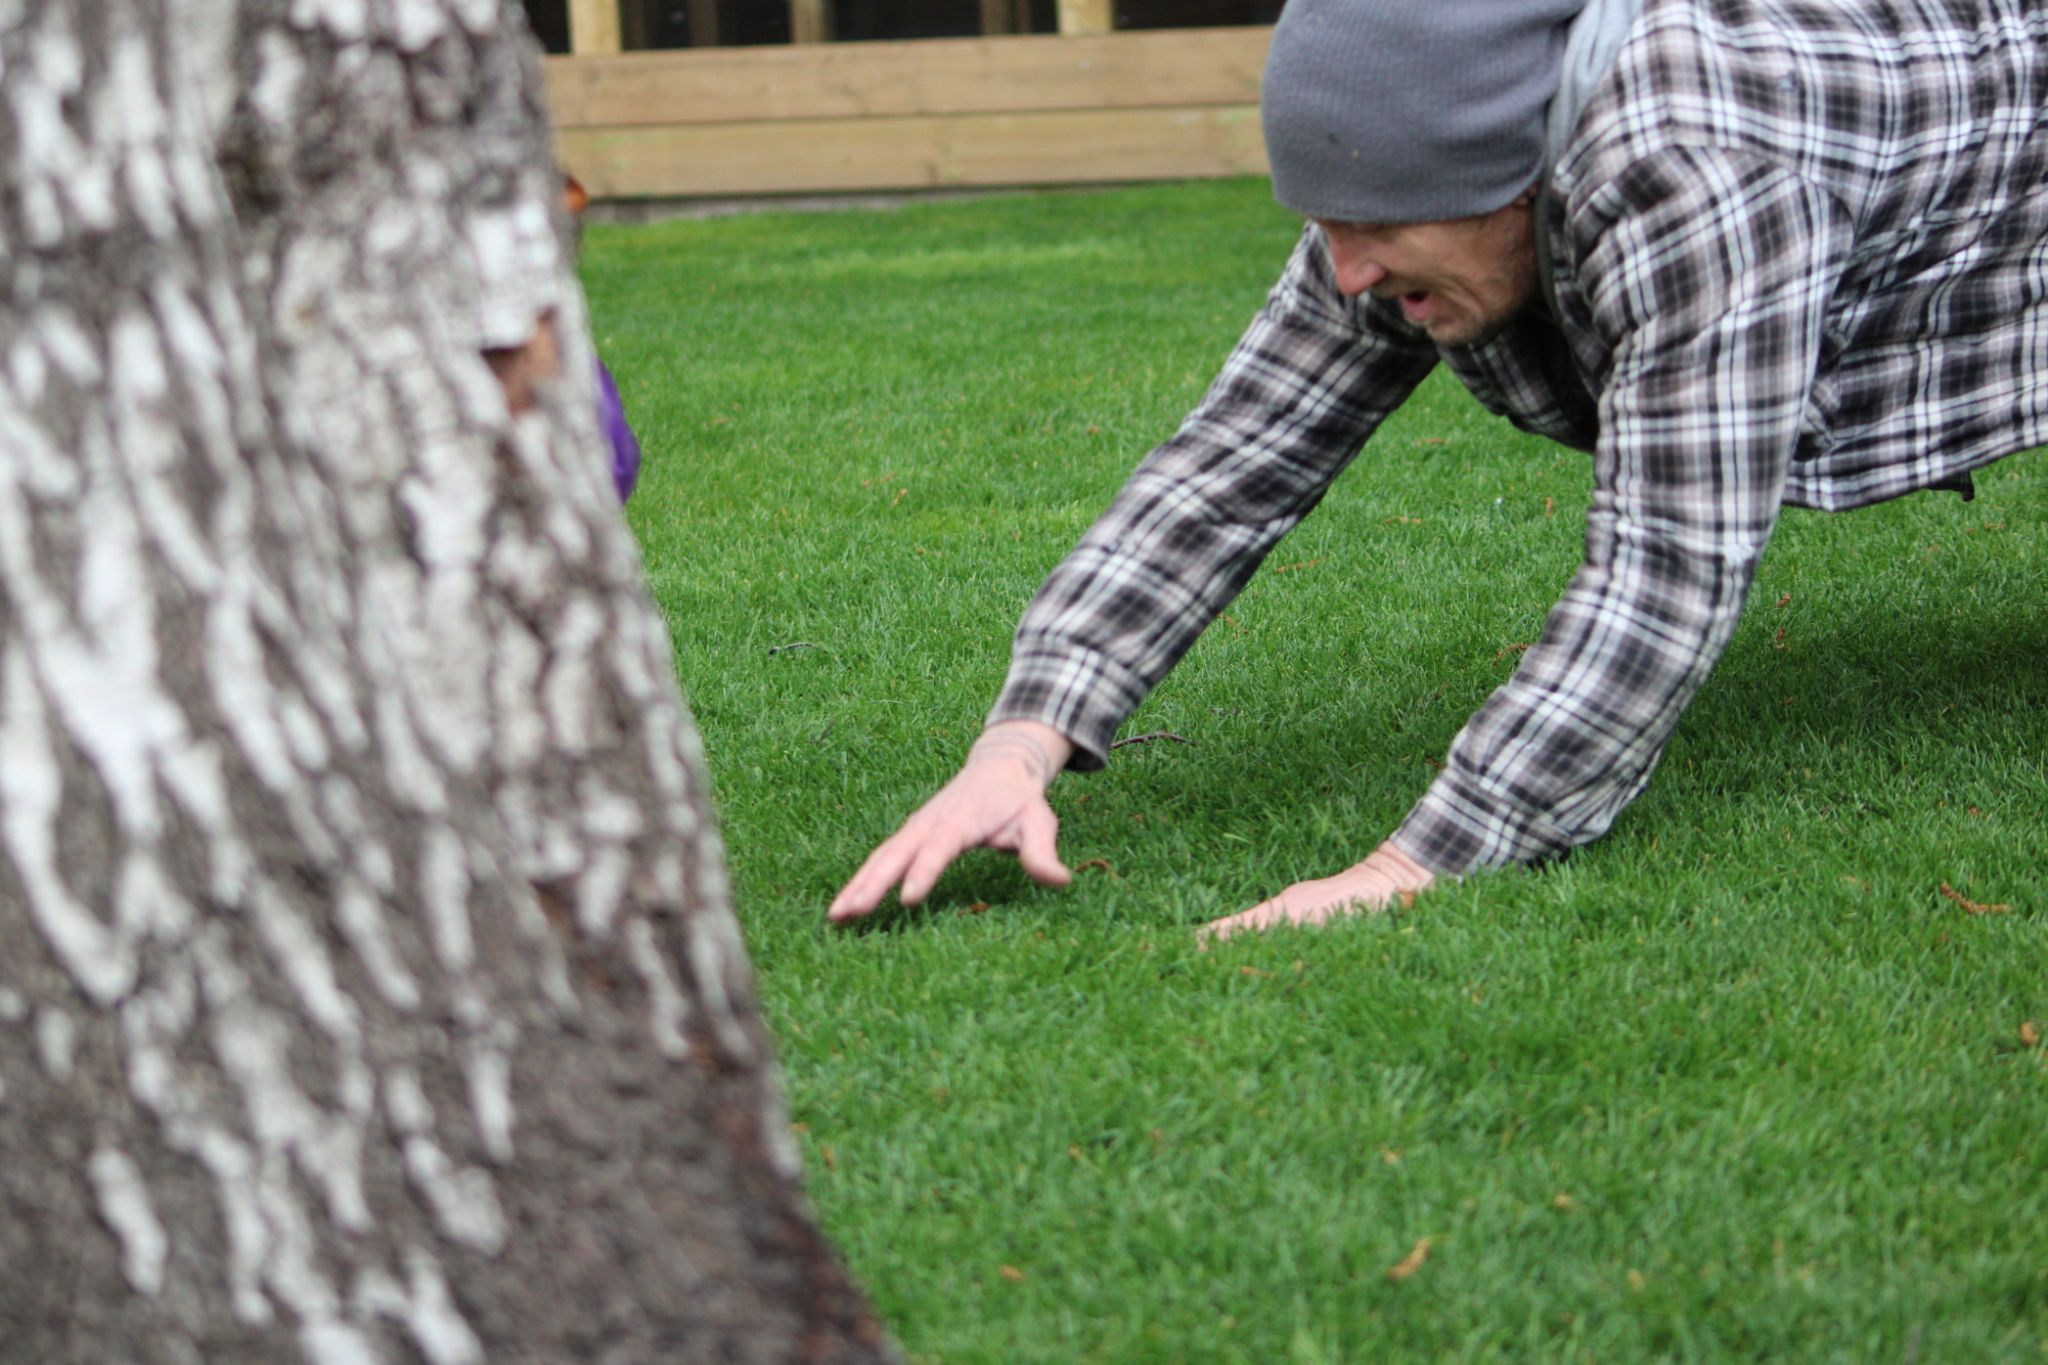 older-man-using-arms-to-break-fall-on-grass